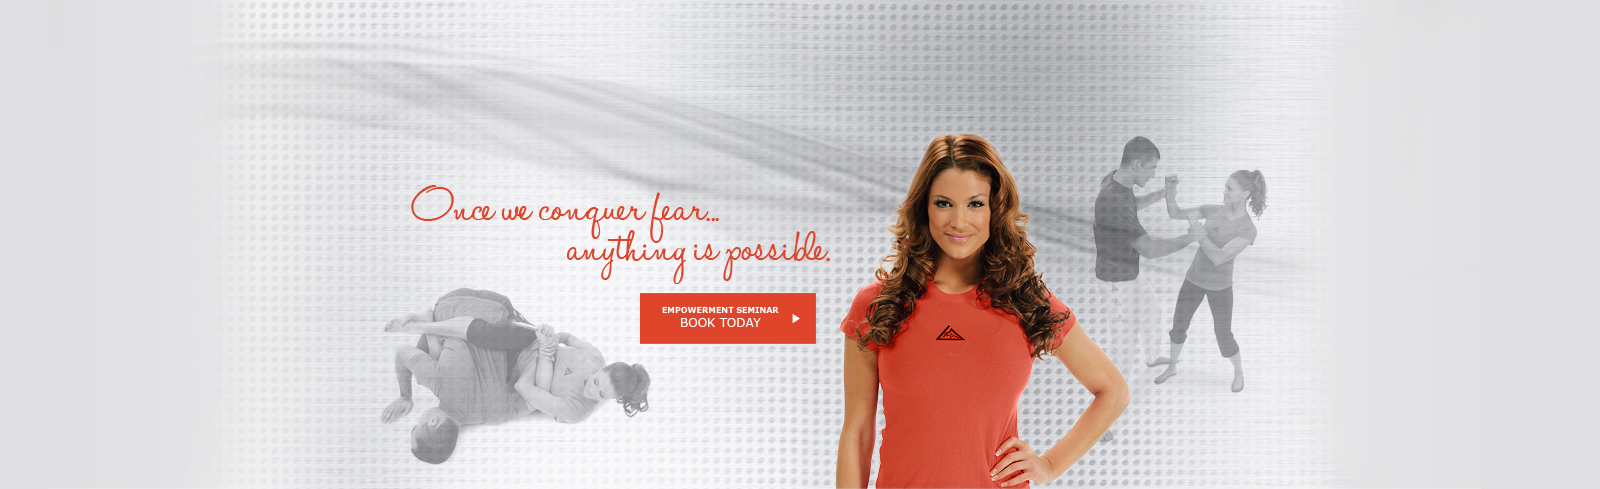 Eve Torres Self Defense Empowerment